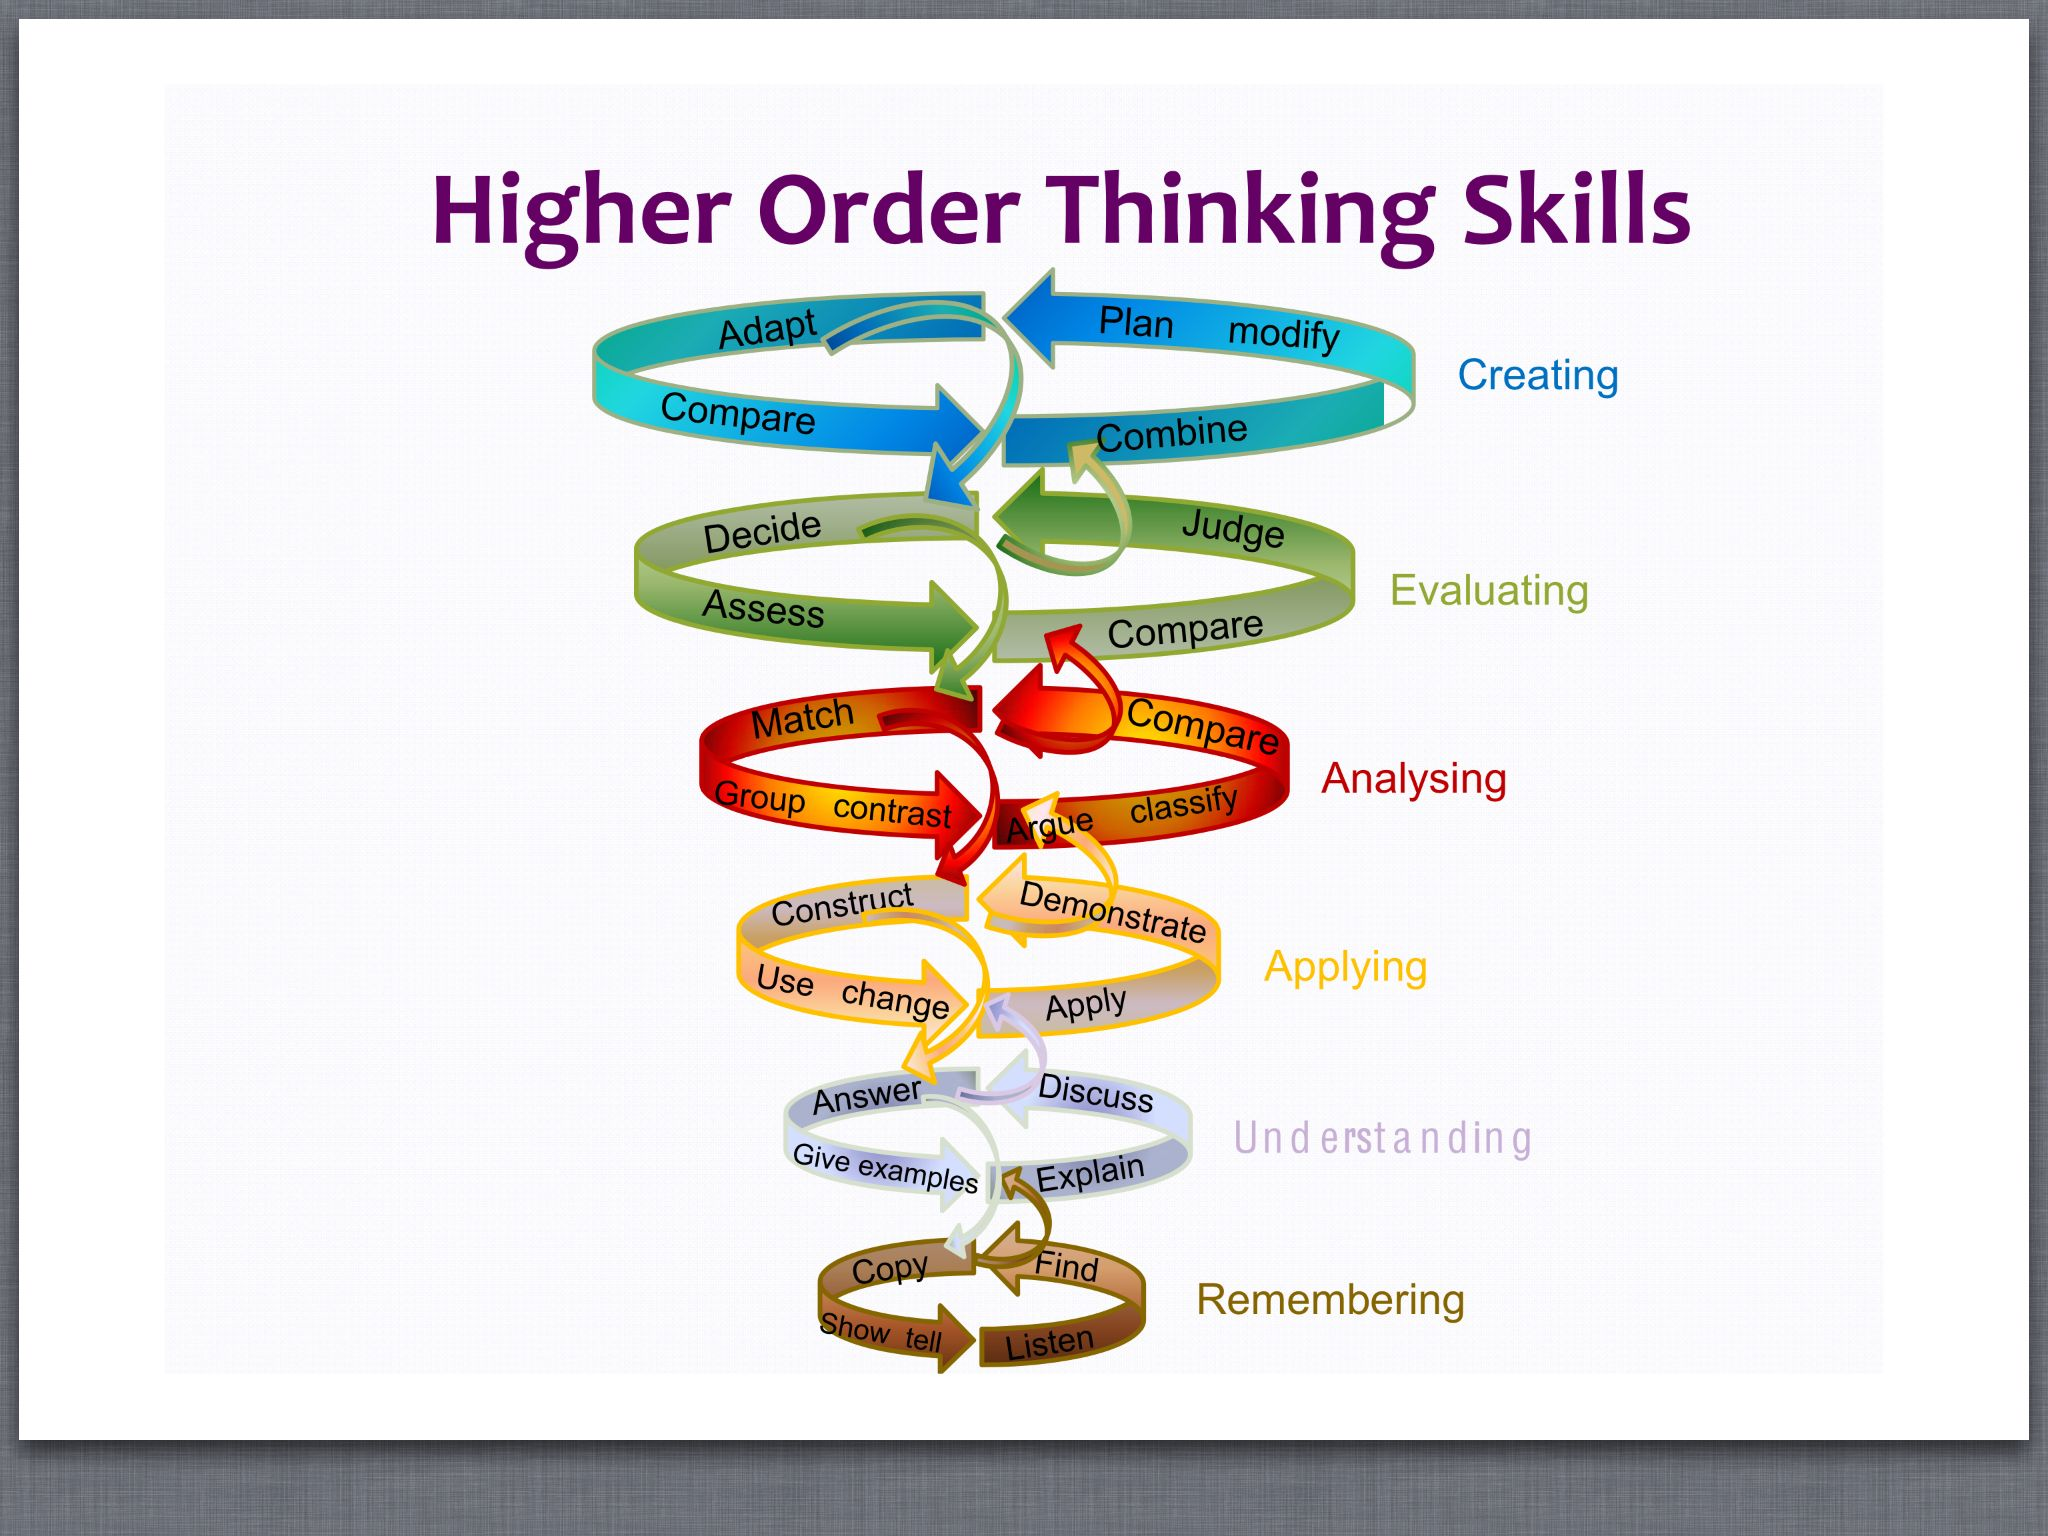 Higher Order Thinking Skills Template